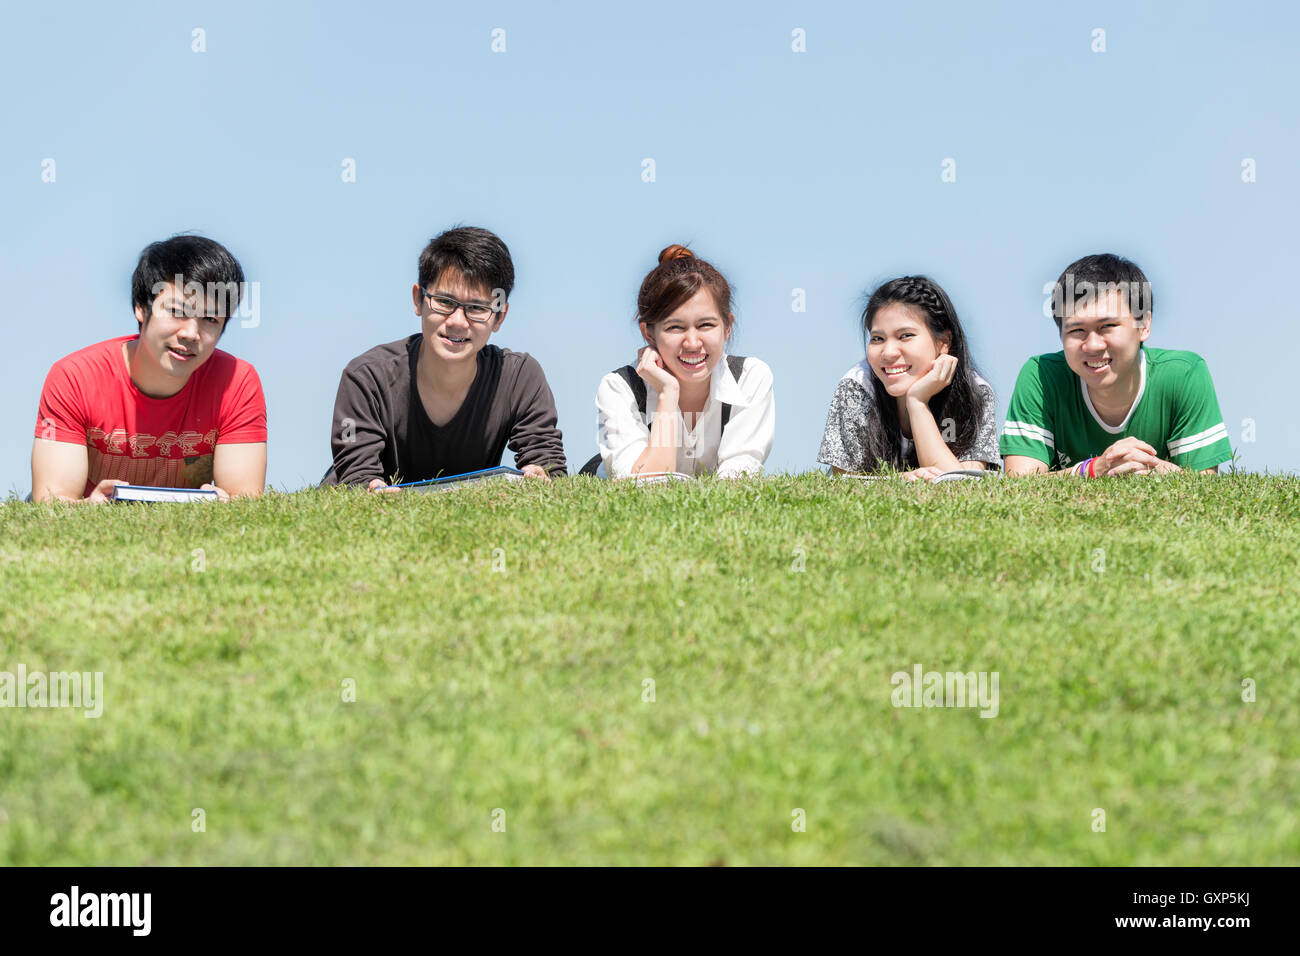 Group of friends studying outdoors in park at school.Five Asian high school student lying in grass at school. - Stock Image